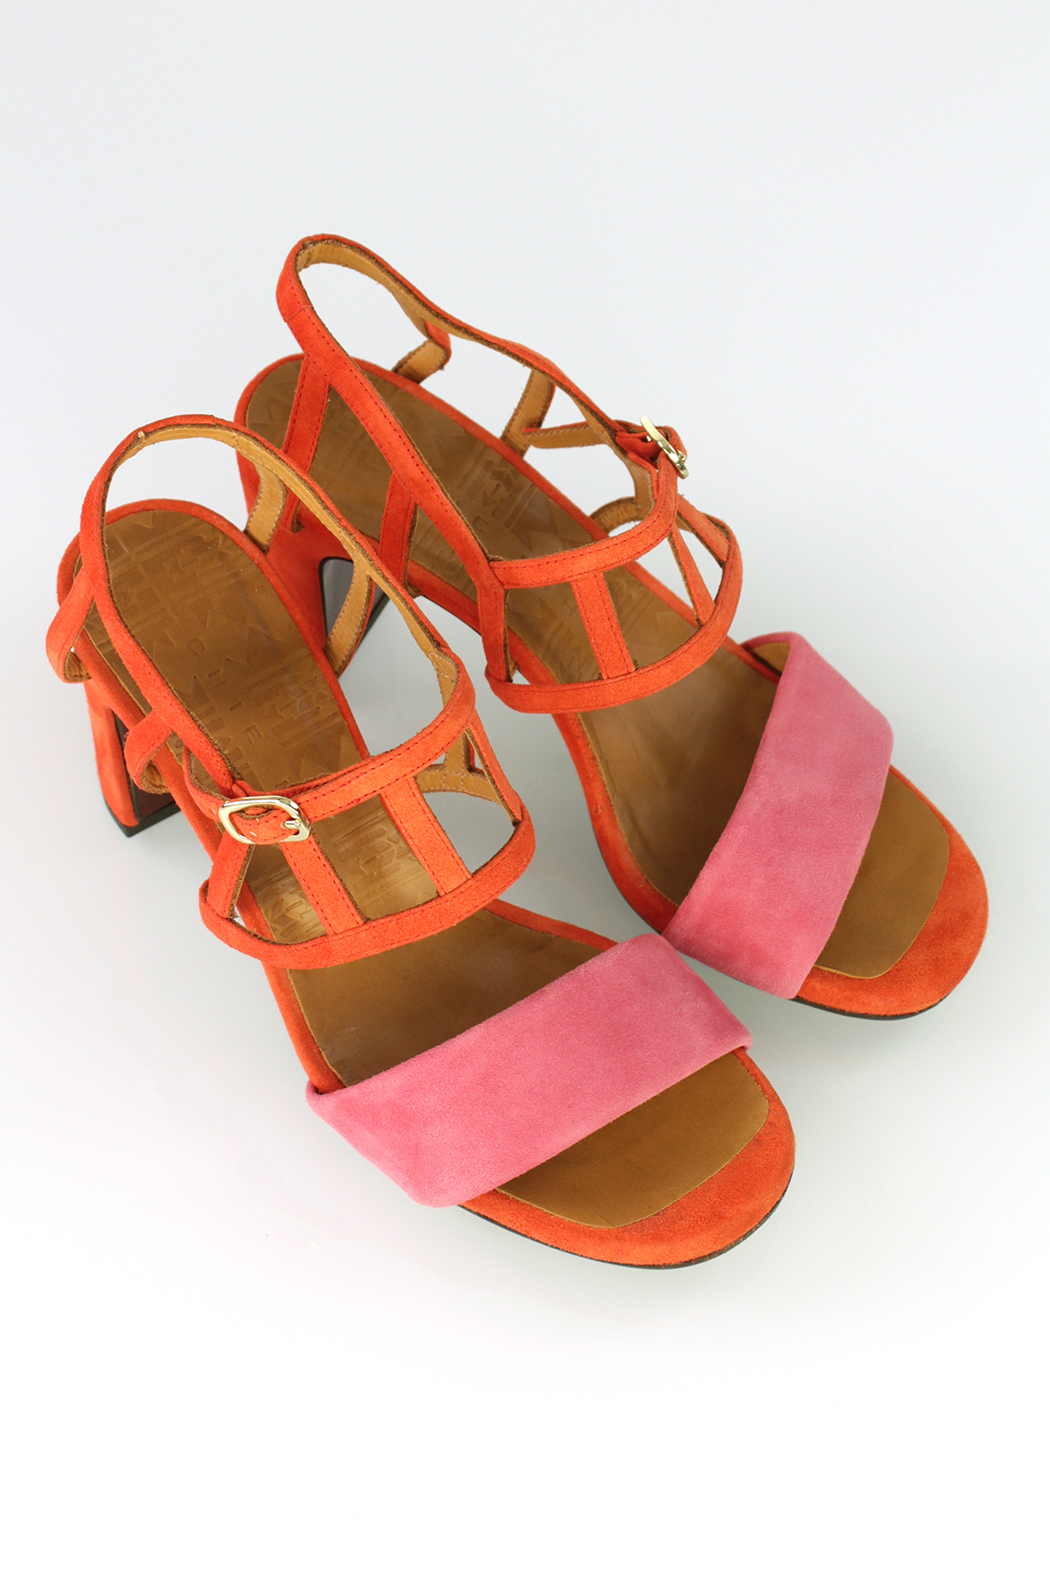 GRACE & MABEL - CHIE MIHARA LUNCH B CORAL AND RED SUEDE SANDALS  £61.50